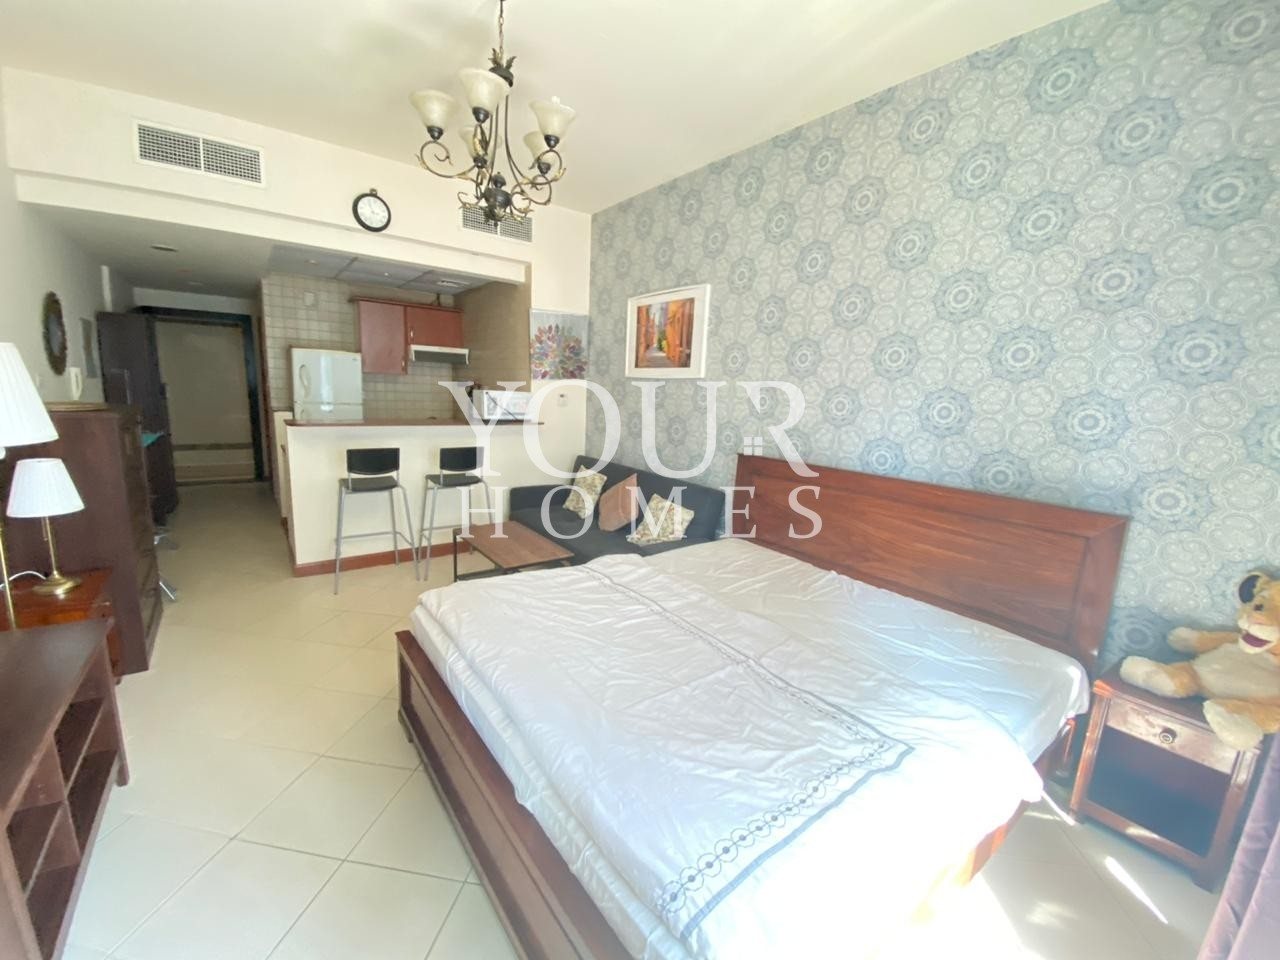 SO | Gas & AC free studio | Fully Furnished available from 15-08-2020 * 28k-38k *